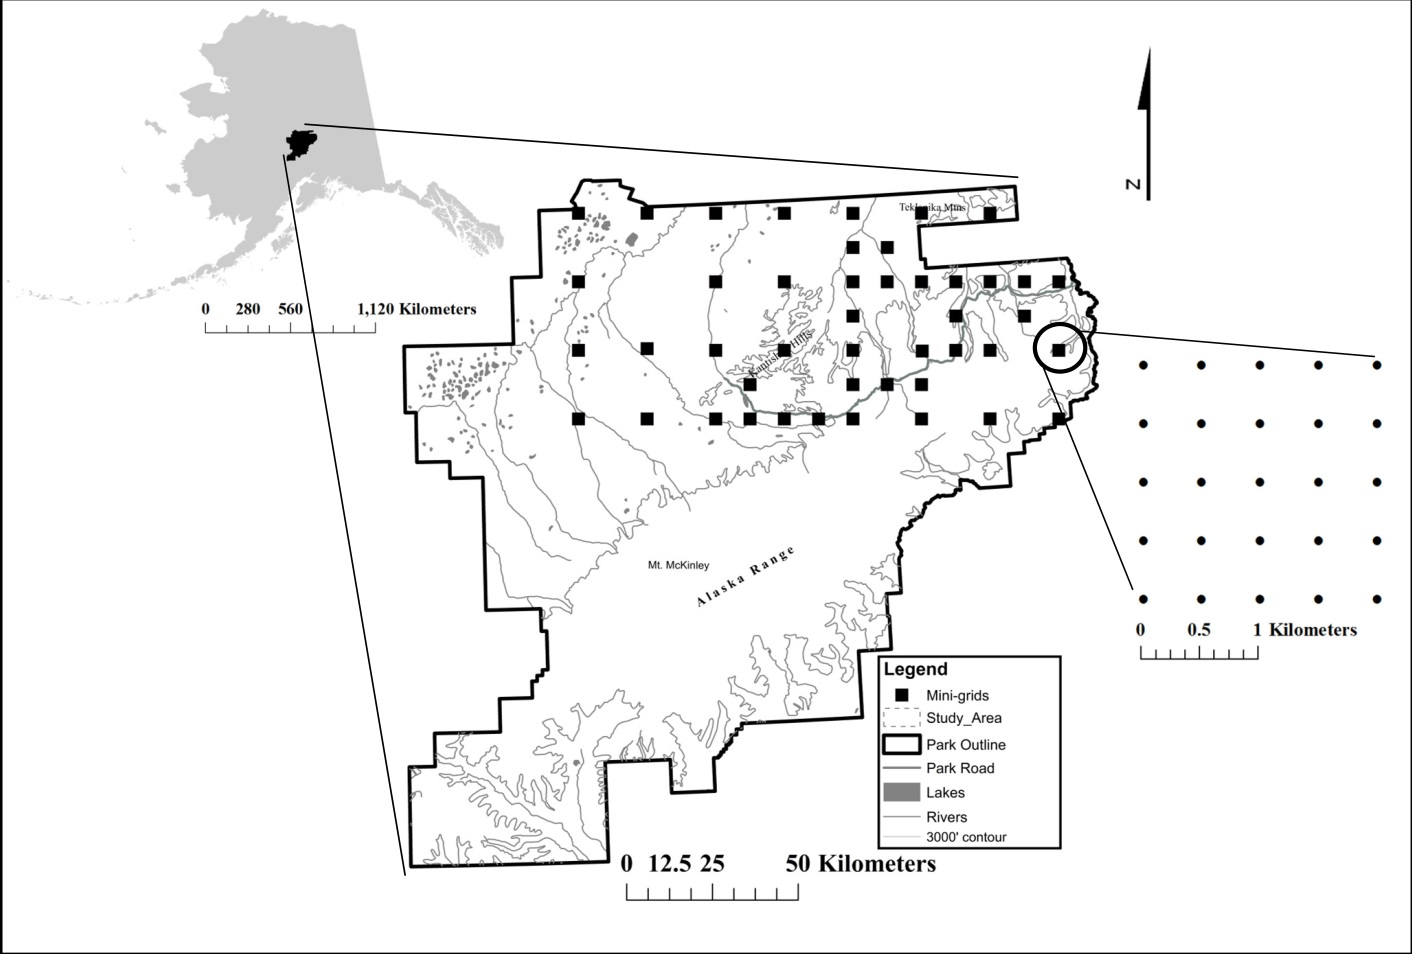 Sampling sites spread in a grid of 20km intervals over 12,800 km2 of the north end of Denali National Park. From Fig. 1 of Roland et al.